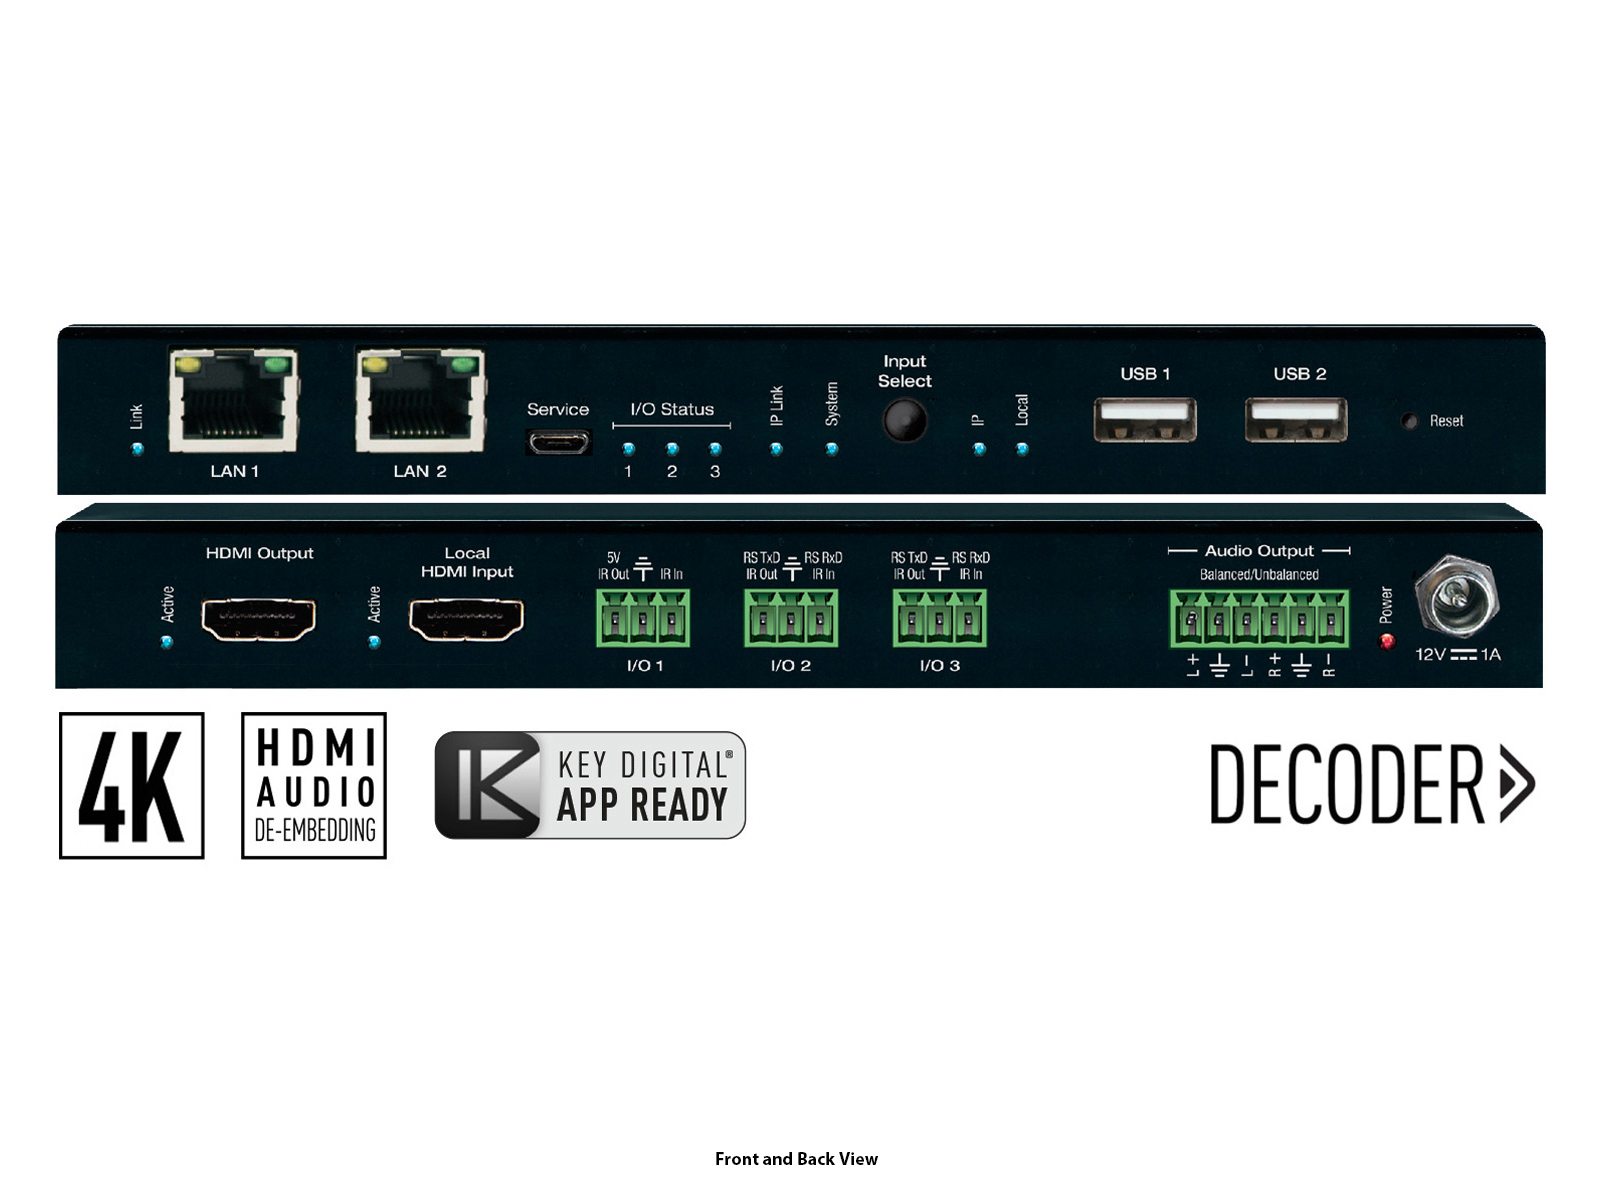 KD-IP1022DEC 4K UHD AV over IP Decoder with Independent Video/Audio/KVM/USB Routing and Video Wall Processing by Key Digital